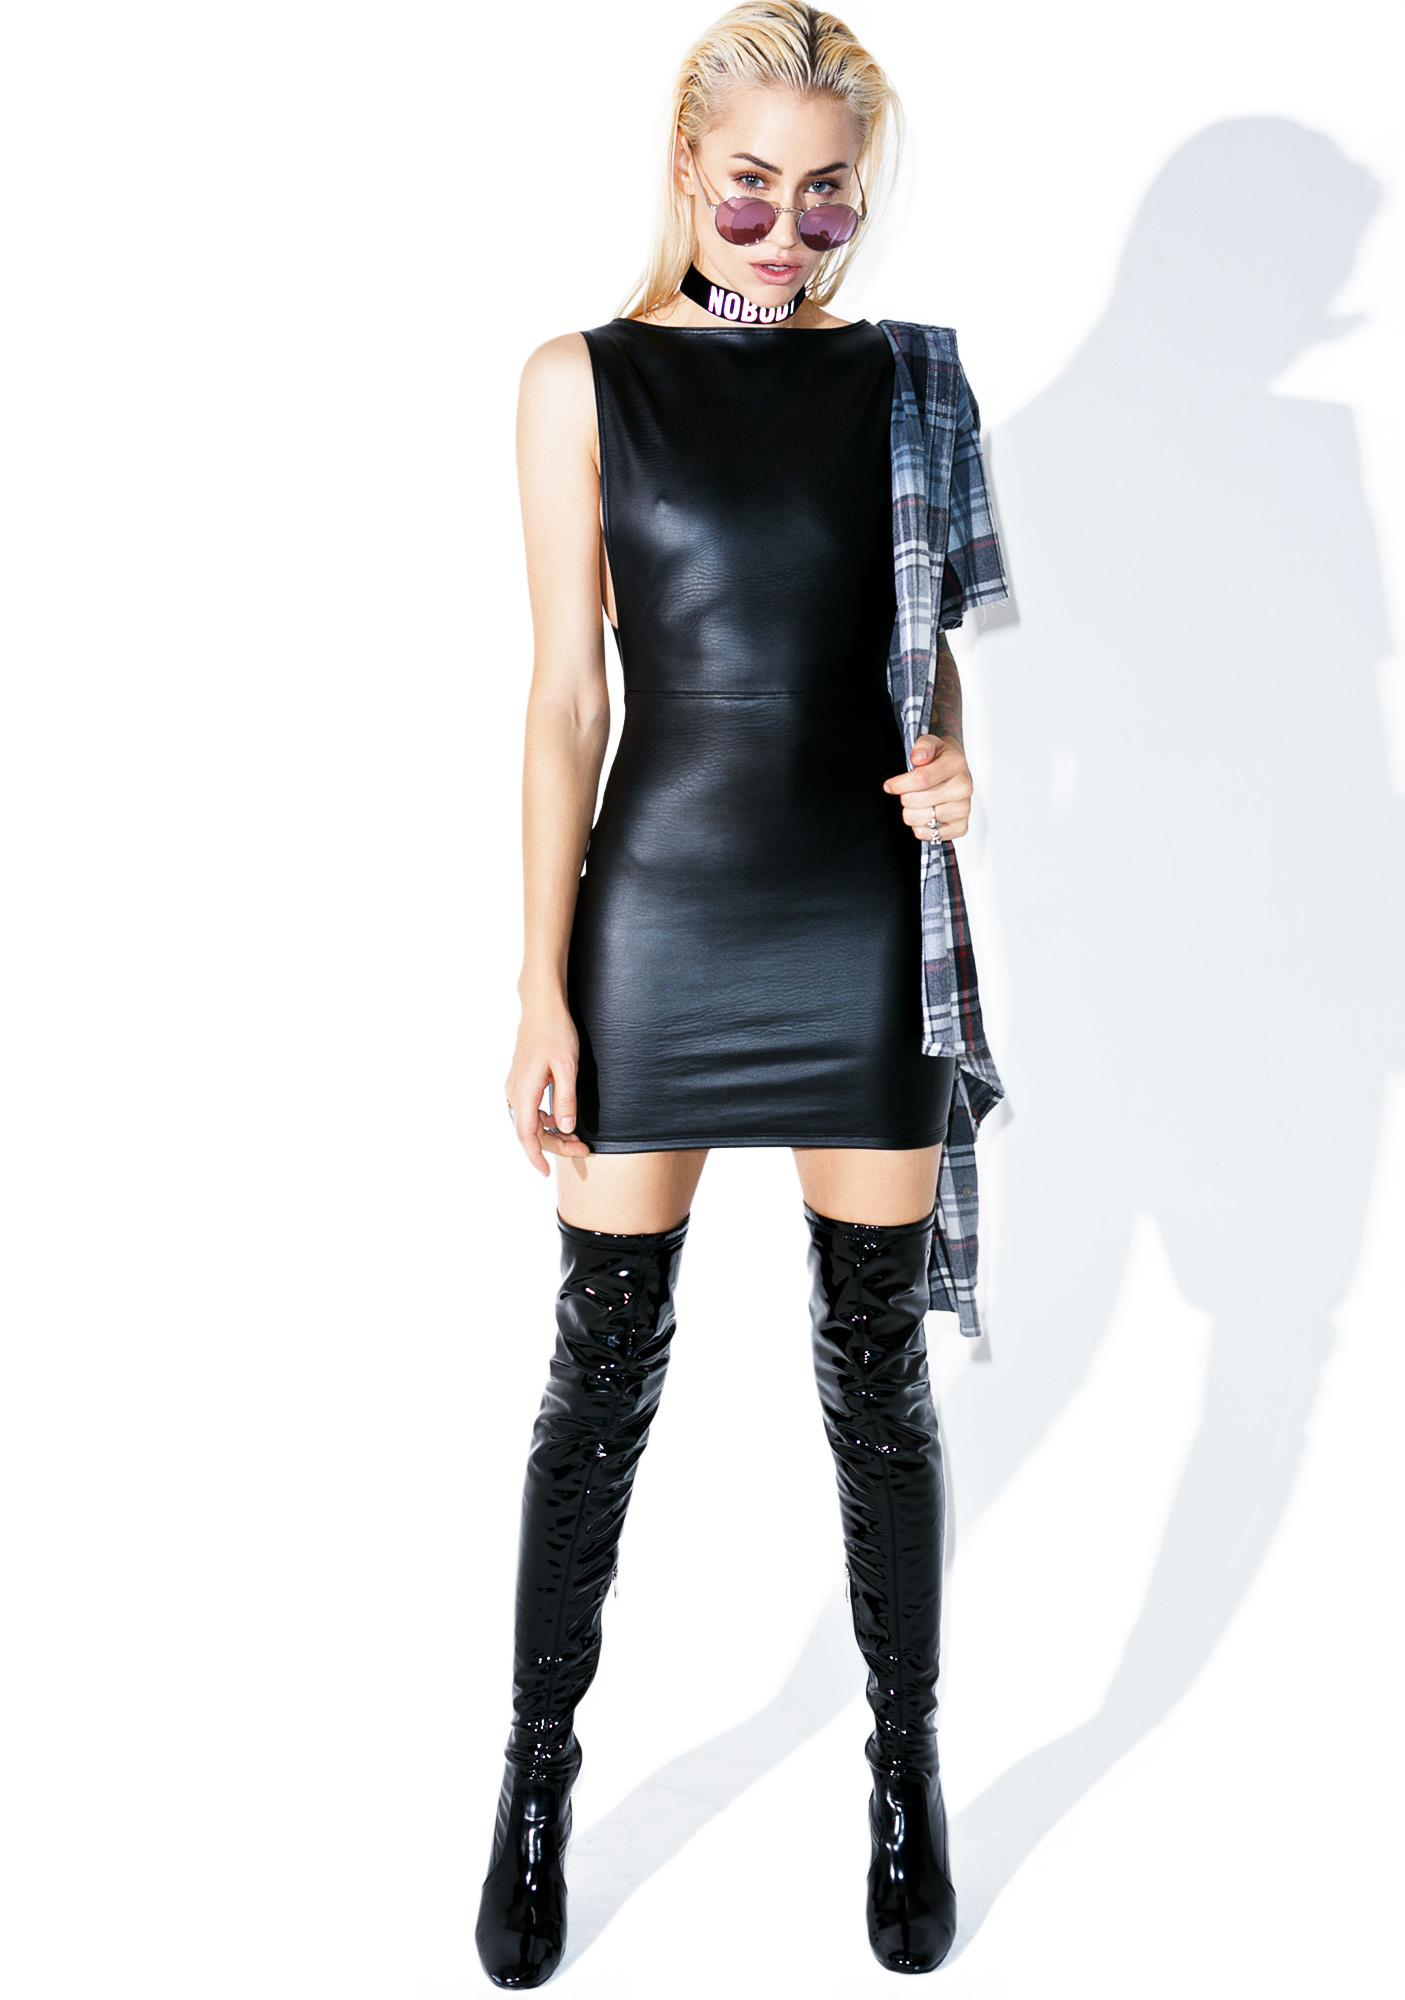 Untitled & Co Terminator Dress